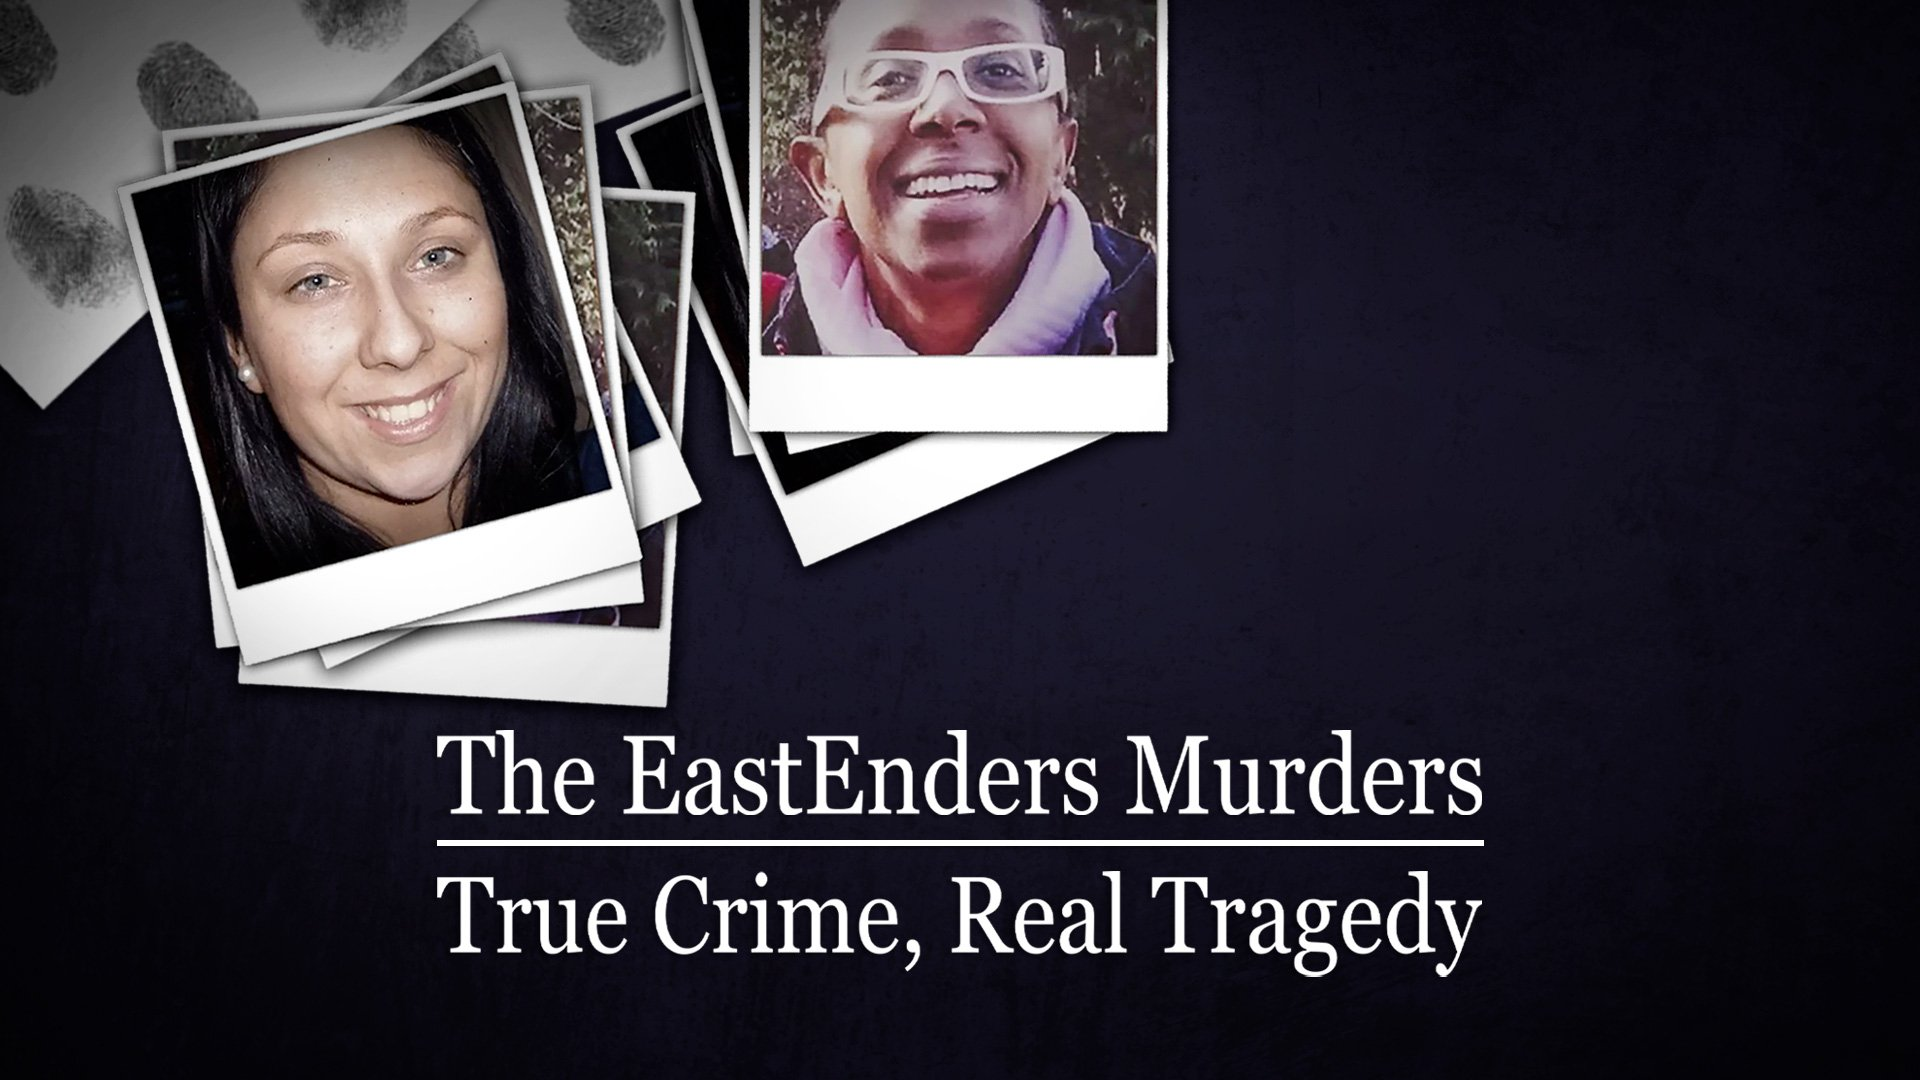 The EastEnders Murders: True Crime, Real Tragedy on BritBox UK